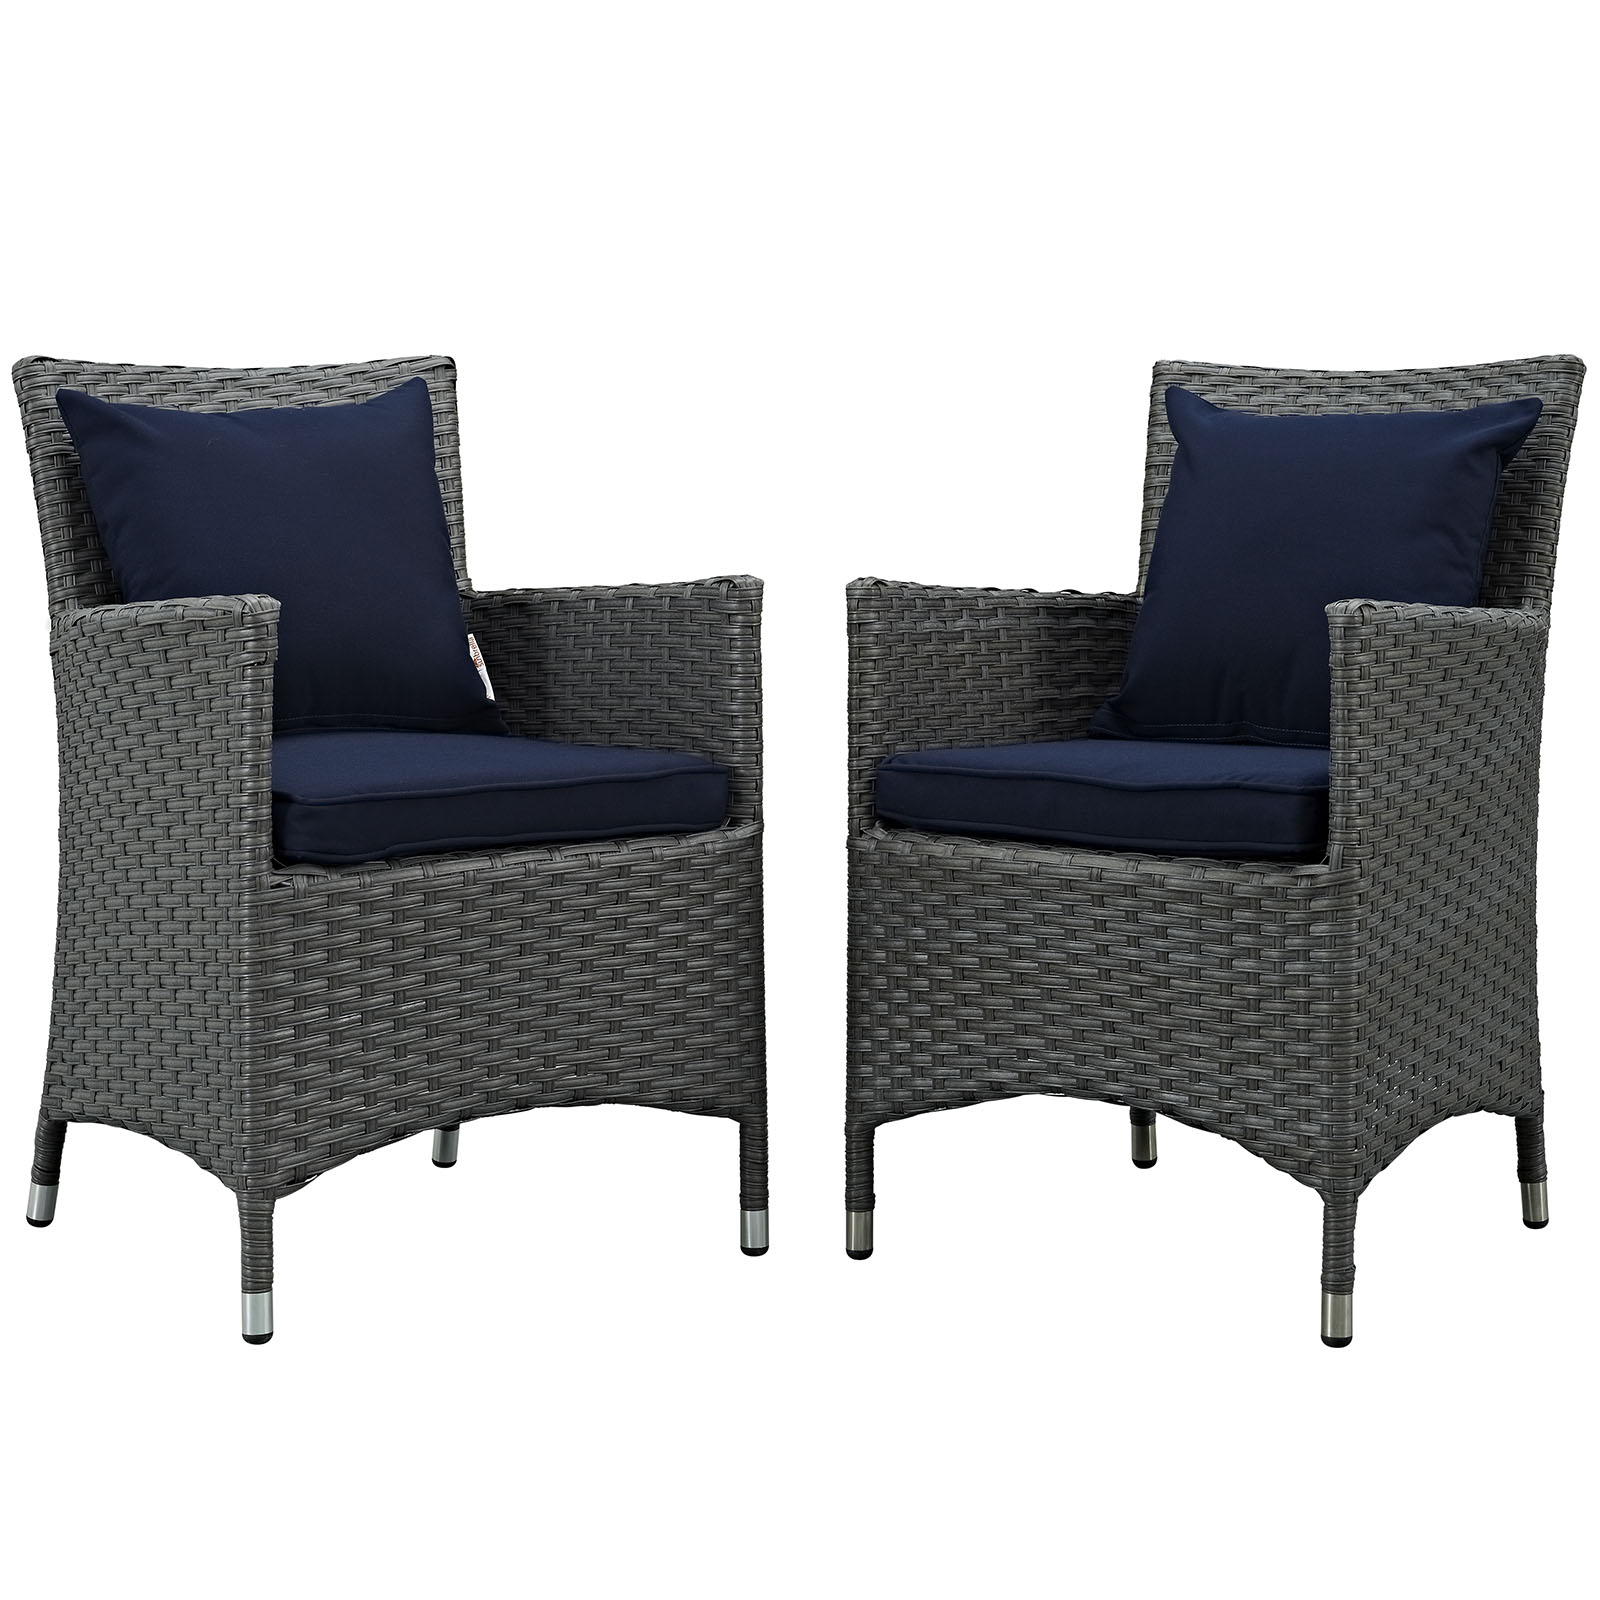 Modern Contemporary Urban Design Outdoor Patio Balcony Dining Chair ( Set  Of Two), Navy Blue, Rattan